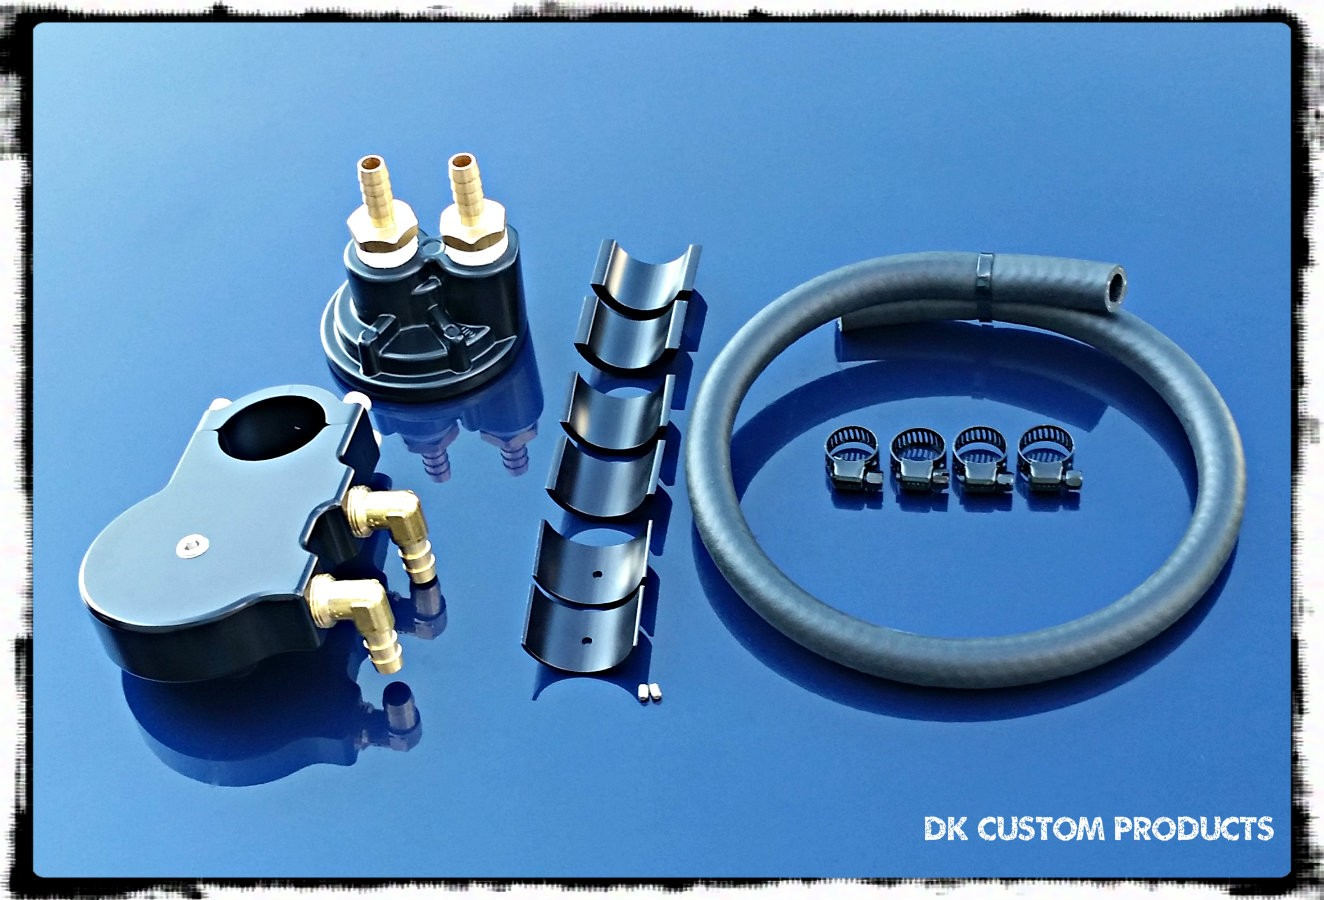 CnC Oil Filter Relocation Kit Harley Davidson DK Custom Cable Operated Carbureted TBW High Flow Performance Sportster  Dyna Softail Touring Trike Freewheeler Big Twin Evo Cooler Running Motor easy oil changes complete Jagg Cool-n-Clean